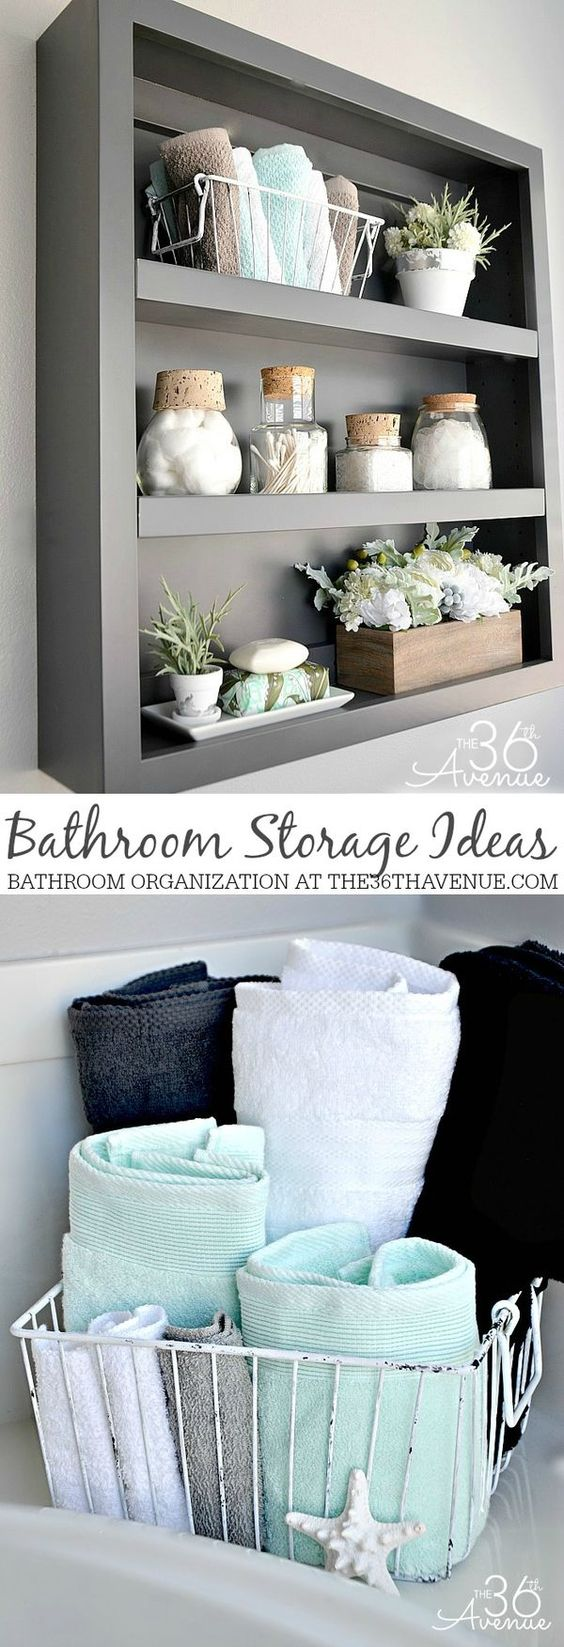 Bathroom Storage and Organization Ideas at the36thavenue.com  #cleaning #bathroom: